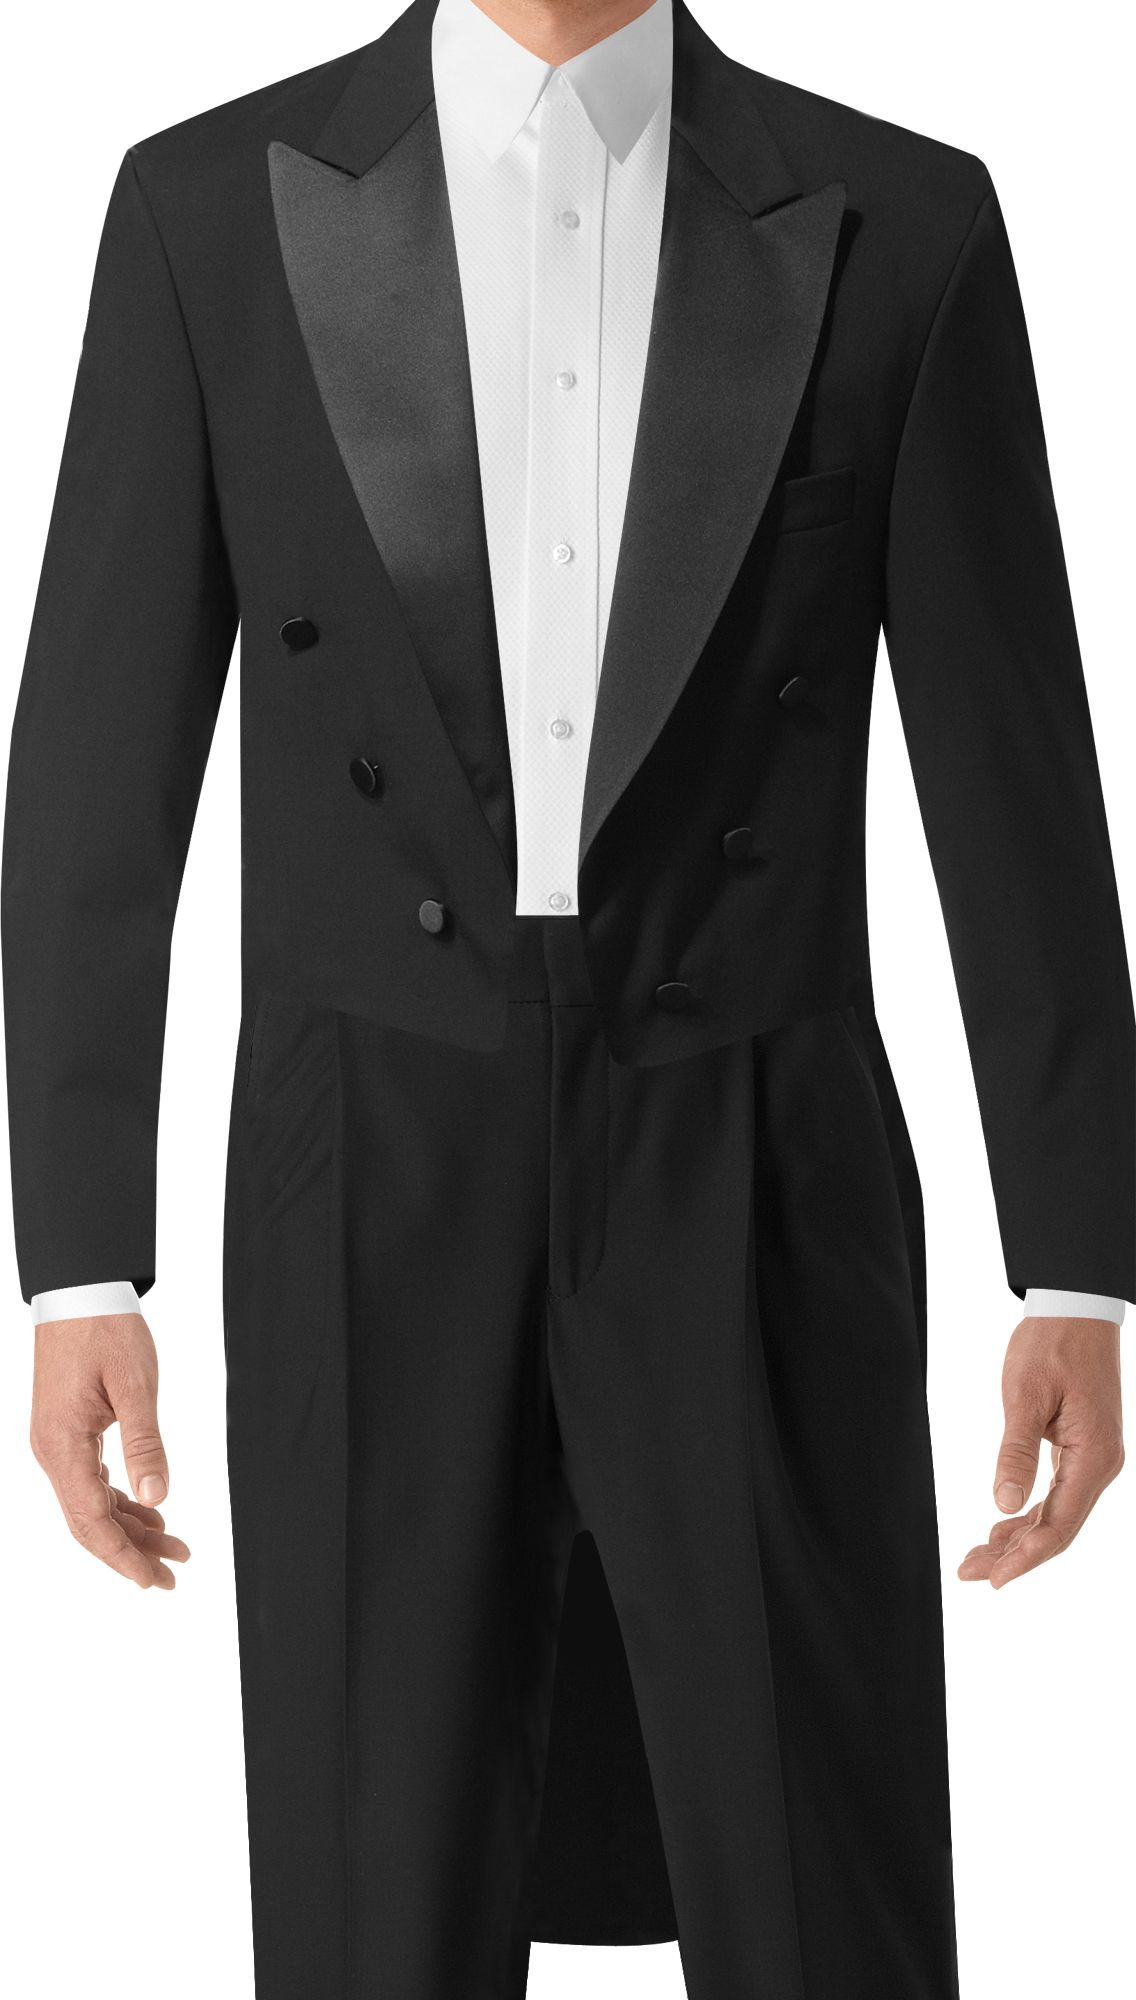 5a41aa5bfc7 I just created the perfect tuxedo look with Build A Tux from Men s  Wearhouse!  MWTuxedo